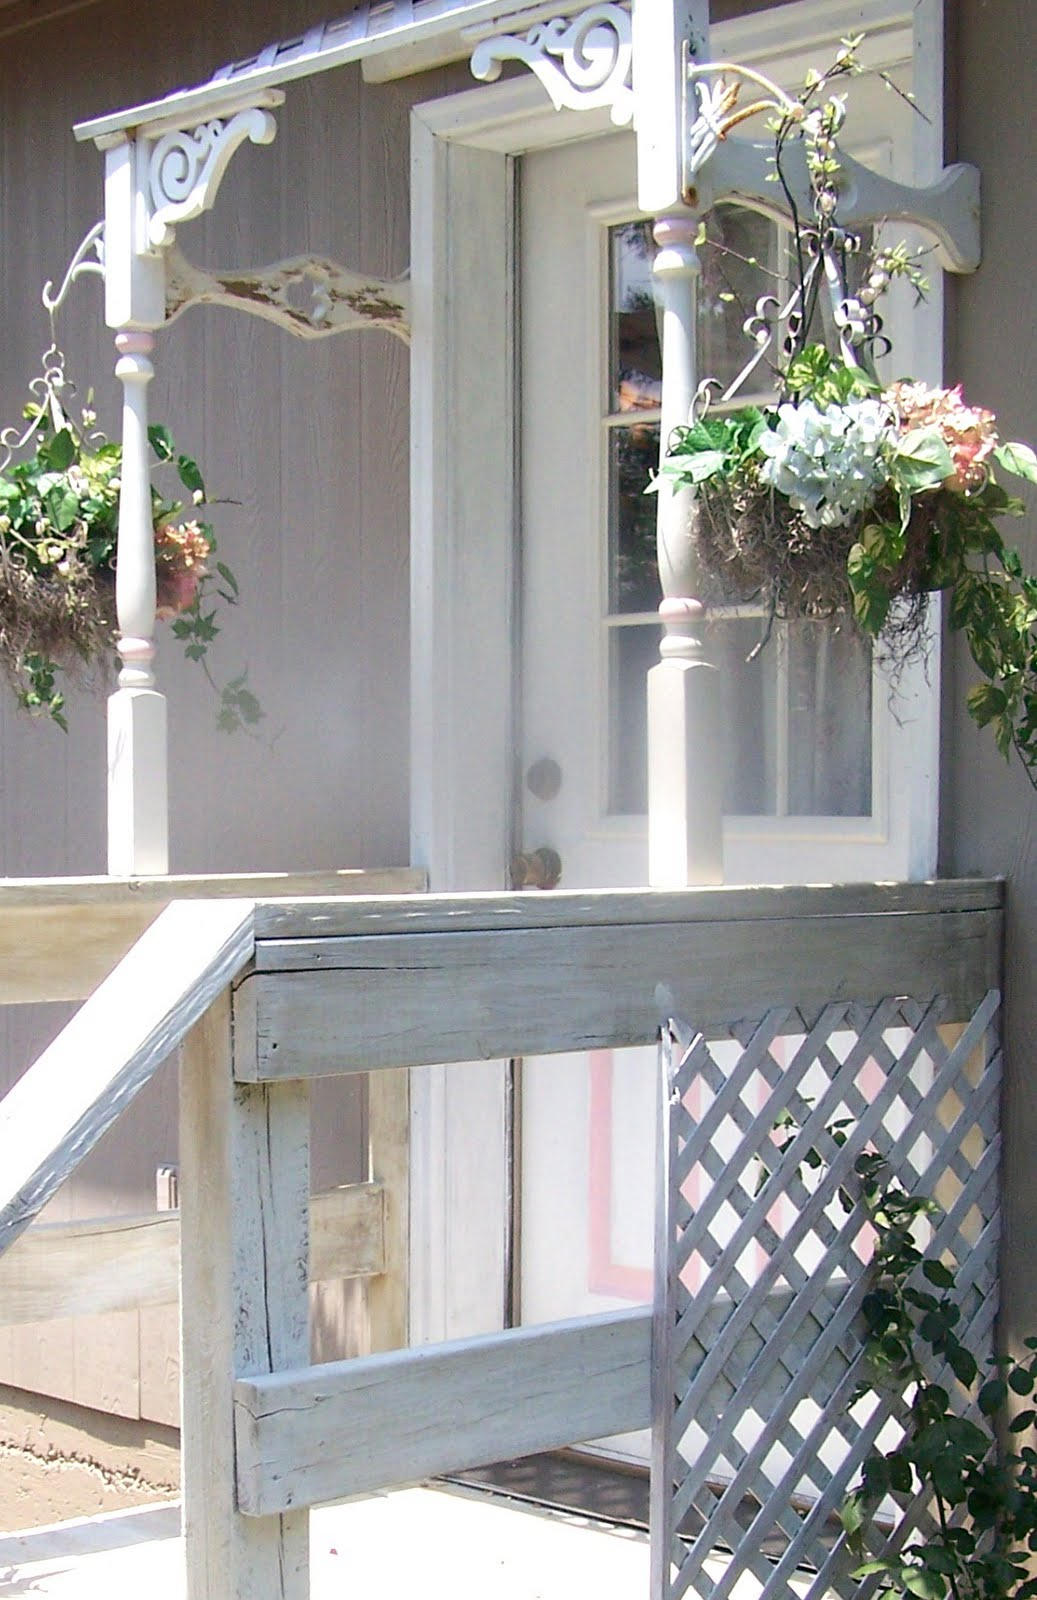 Olivia's Romantic Home: Tiny Chic Porch!